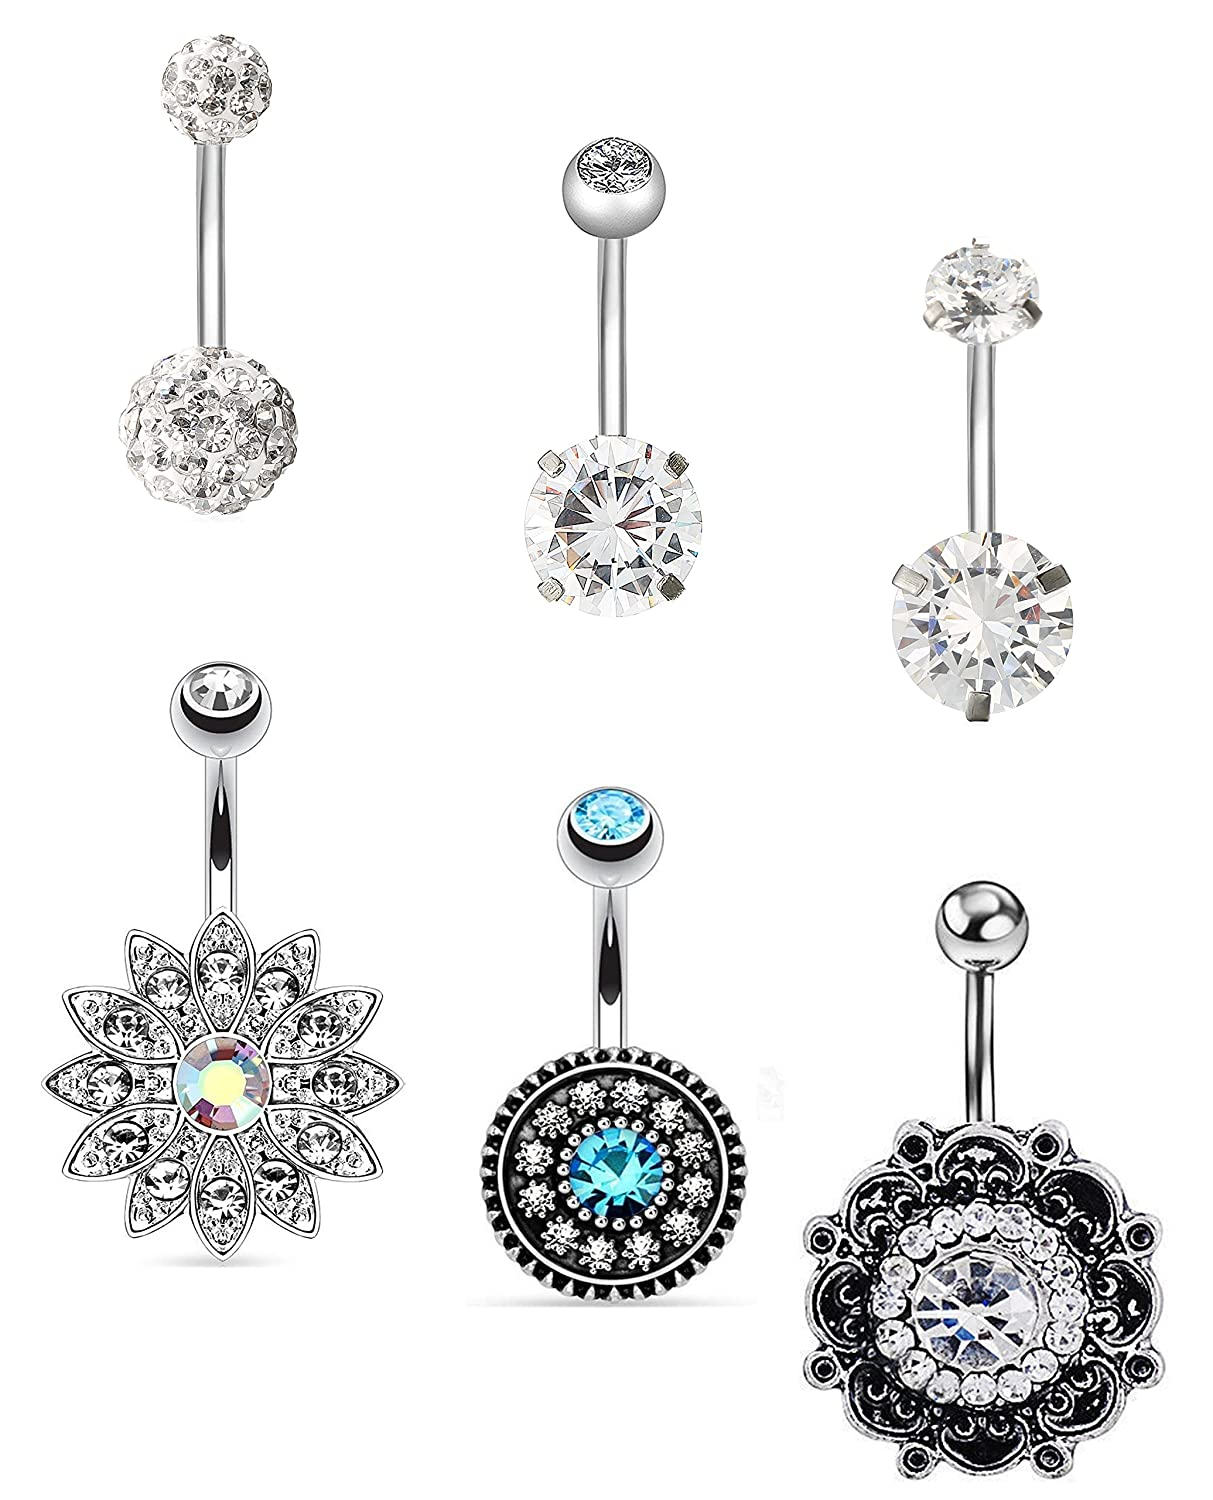 100% Quality Heart Navel Belly Bar Rings Clear Aqua Blue Crystal Bling Cz Surgical Steel Products Are Sold Without Limitations Body Piercing Jewelry